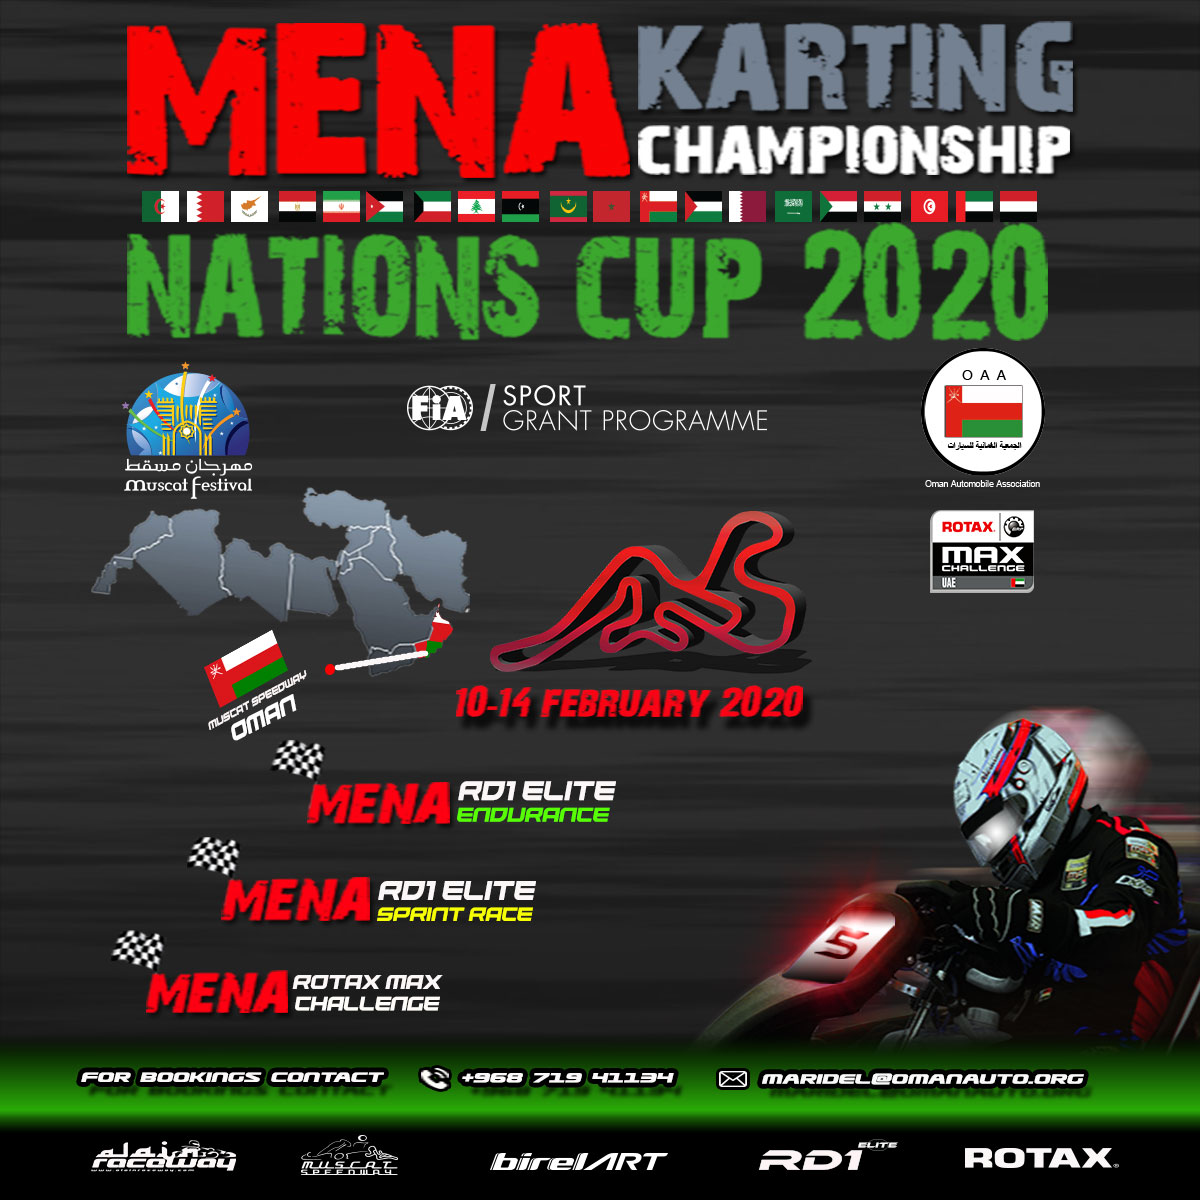 MENA Karting Championship Nation Cup 2020